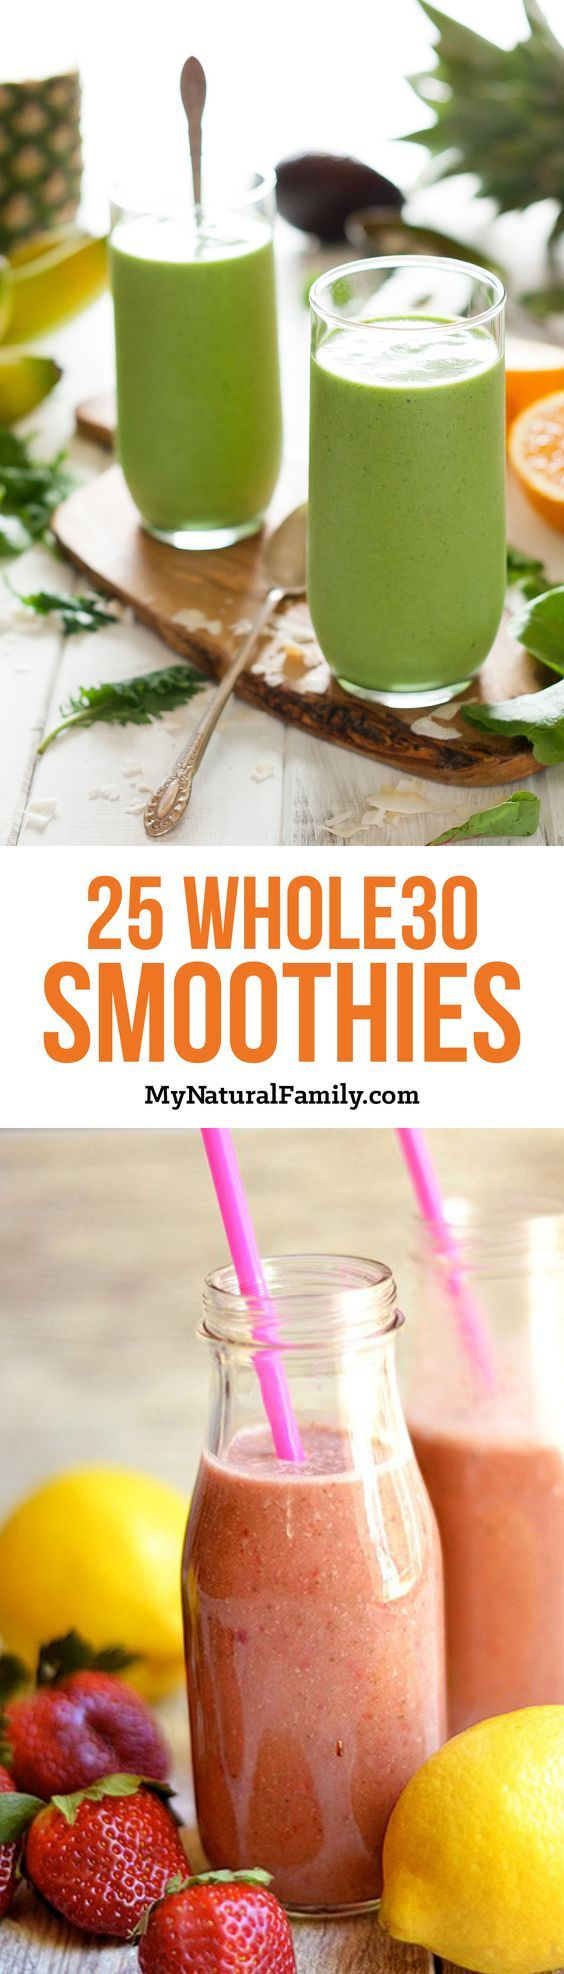 25 Whole30 Breakfast Smoothie Recipes